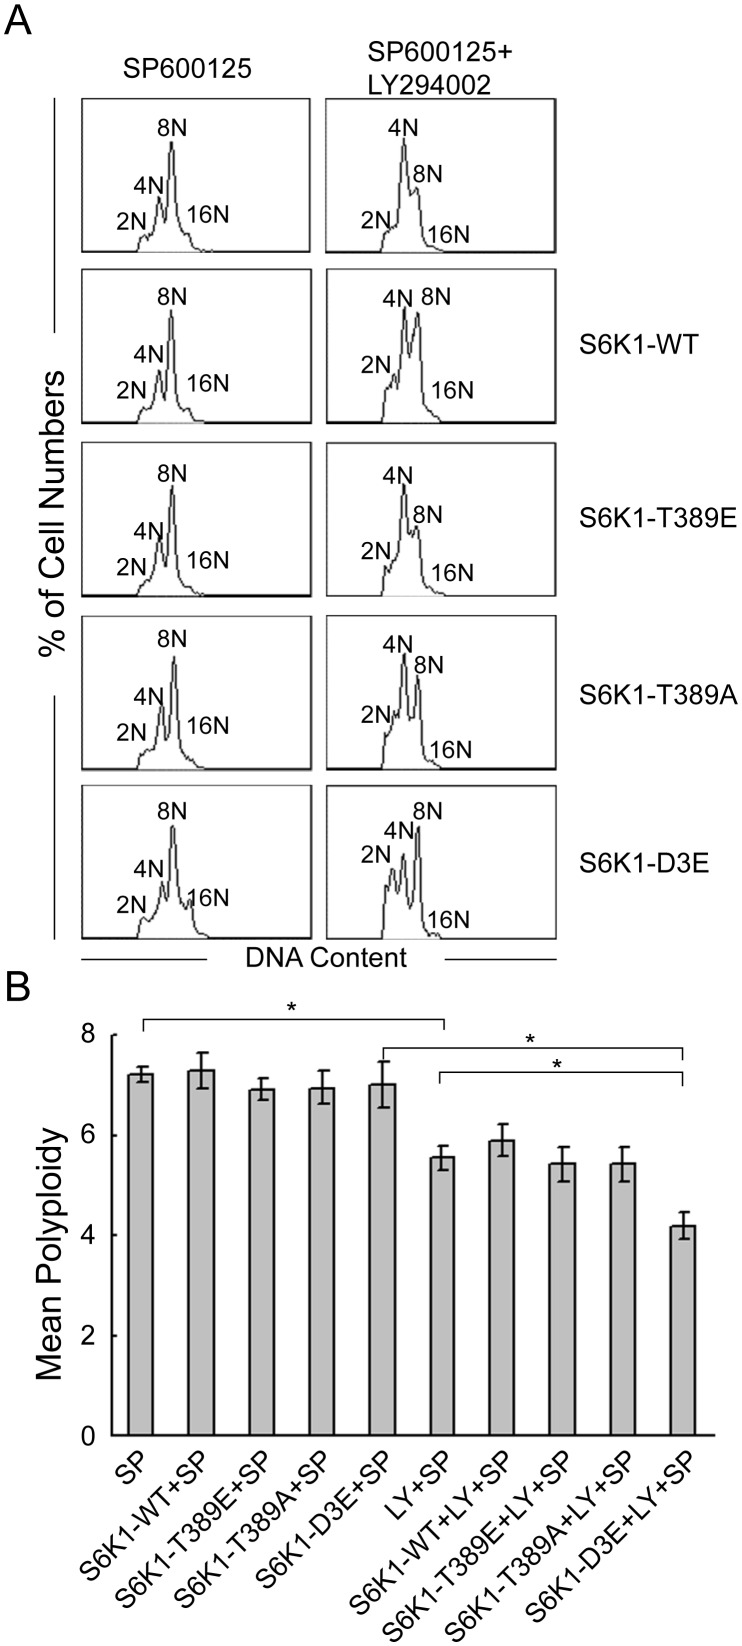 Effects of S6K1 mutant plasmids on SP600125-induced Dami cells. Dami cells were transfected with or without S6K1-WT, S6K1-T389E, S6K1-T389A and S6K1-D3E and cultured overnight. The cells were then induced with SP600125 for 72 hours after pretreatment with or without LY294002 for 1 hour. (A) Representative DNA histograms of Dami cells in each condition. (B) The data are presented as the mean±SEM of the level of polyploidy and were obtained from 4 separate experiments; *p